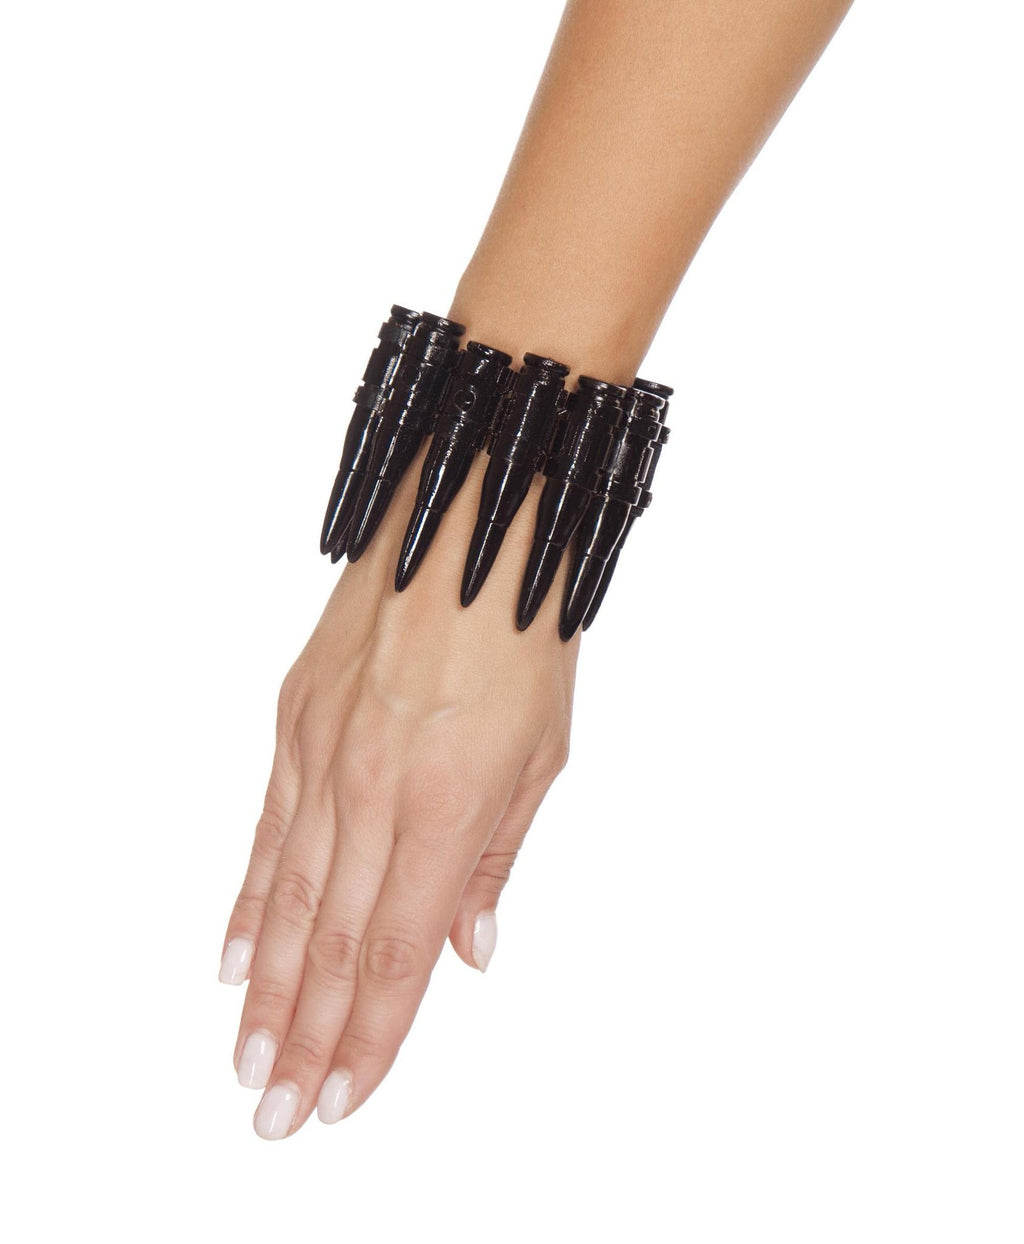 4562 - Black Bullet Wrist Cuff - PlaythingsMiami